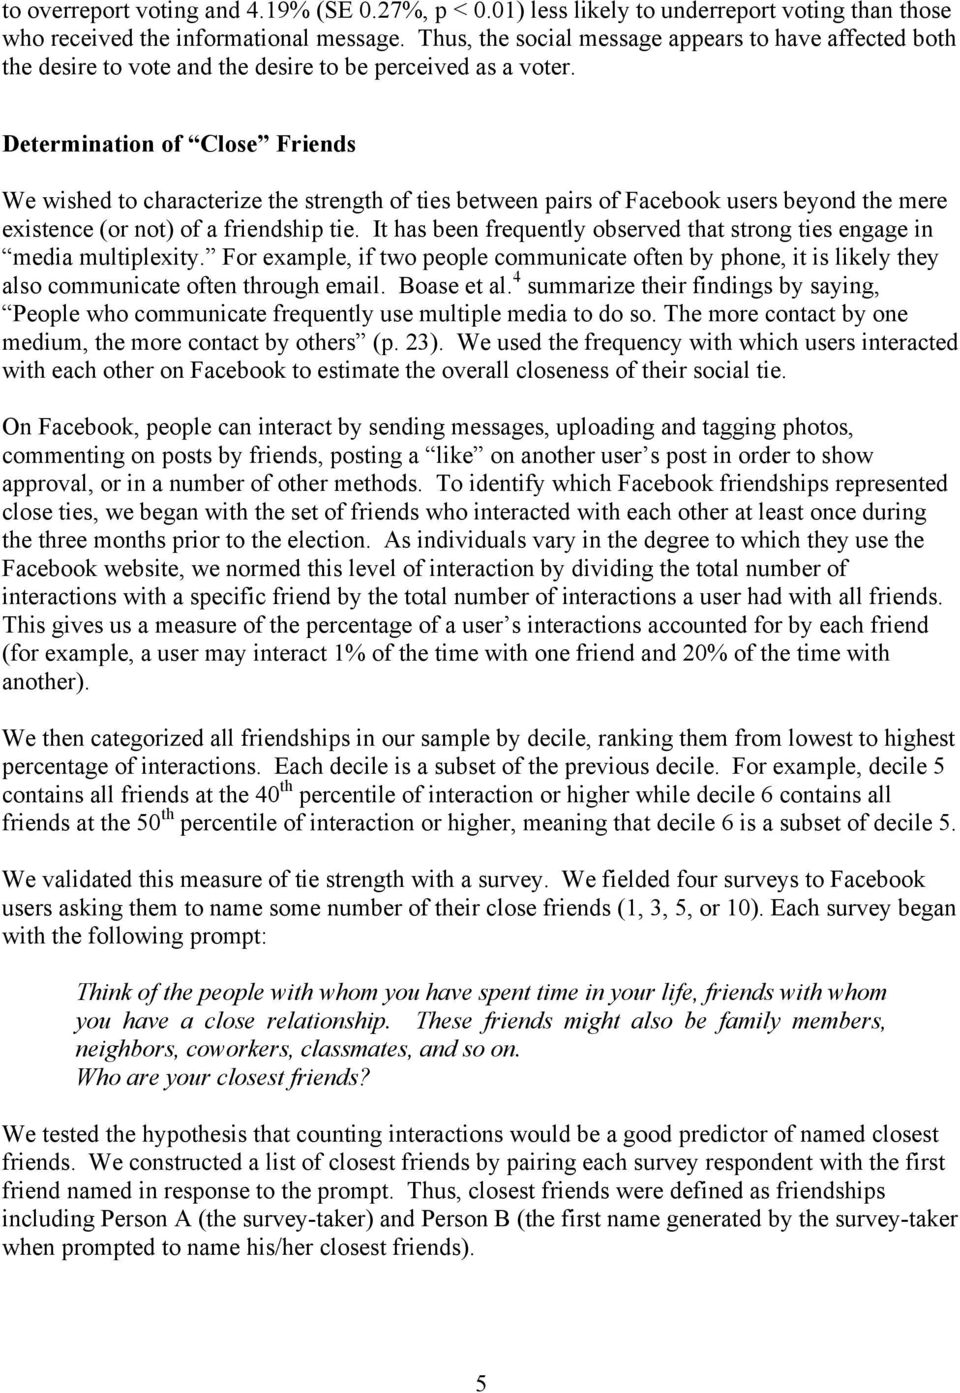 Determination of Close Friends We wished to characterize the strength of ties between pairs of Facebook users beyond the mere existence (or not) of a friendship tie.